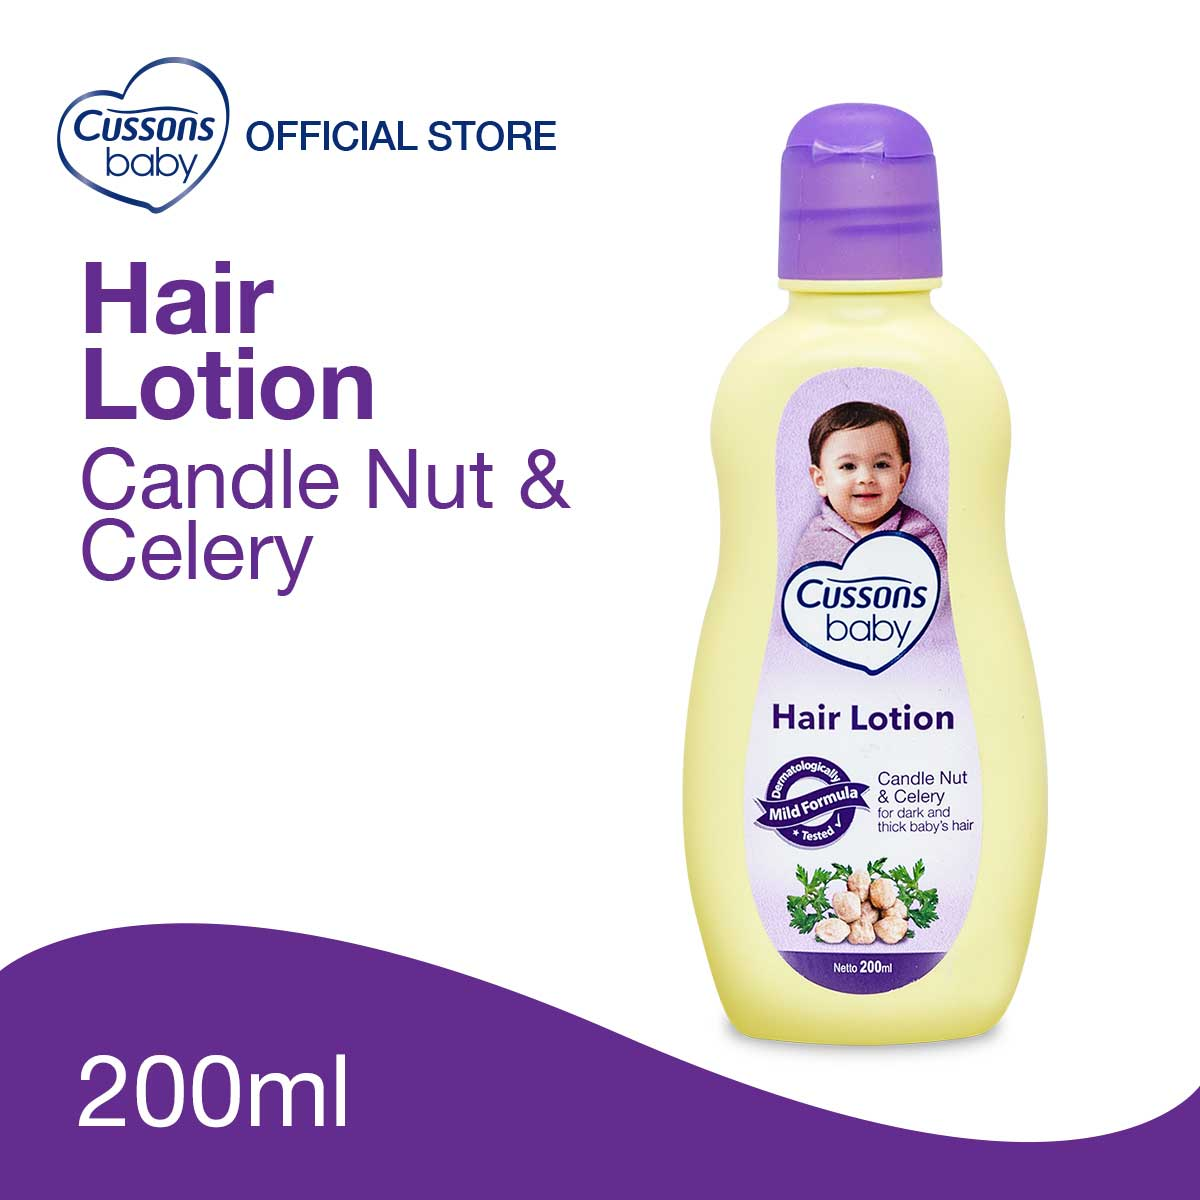 Cussons Baby Hair Lotion Candle Nut & Celery 200ml